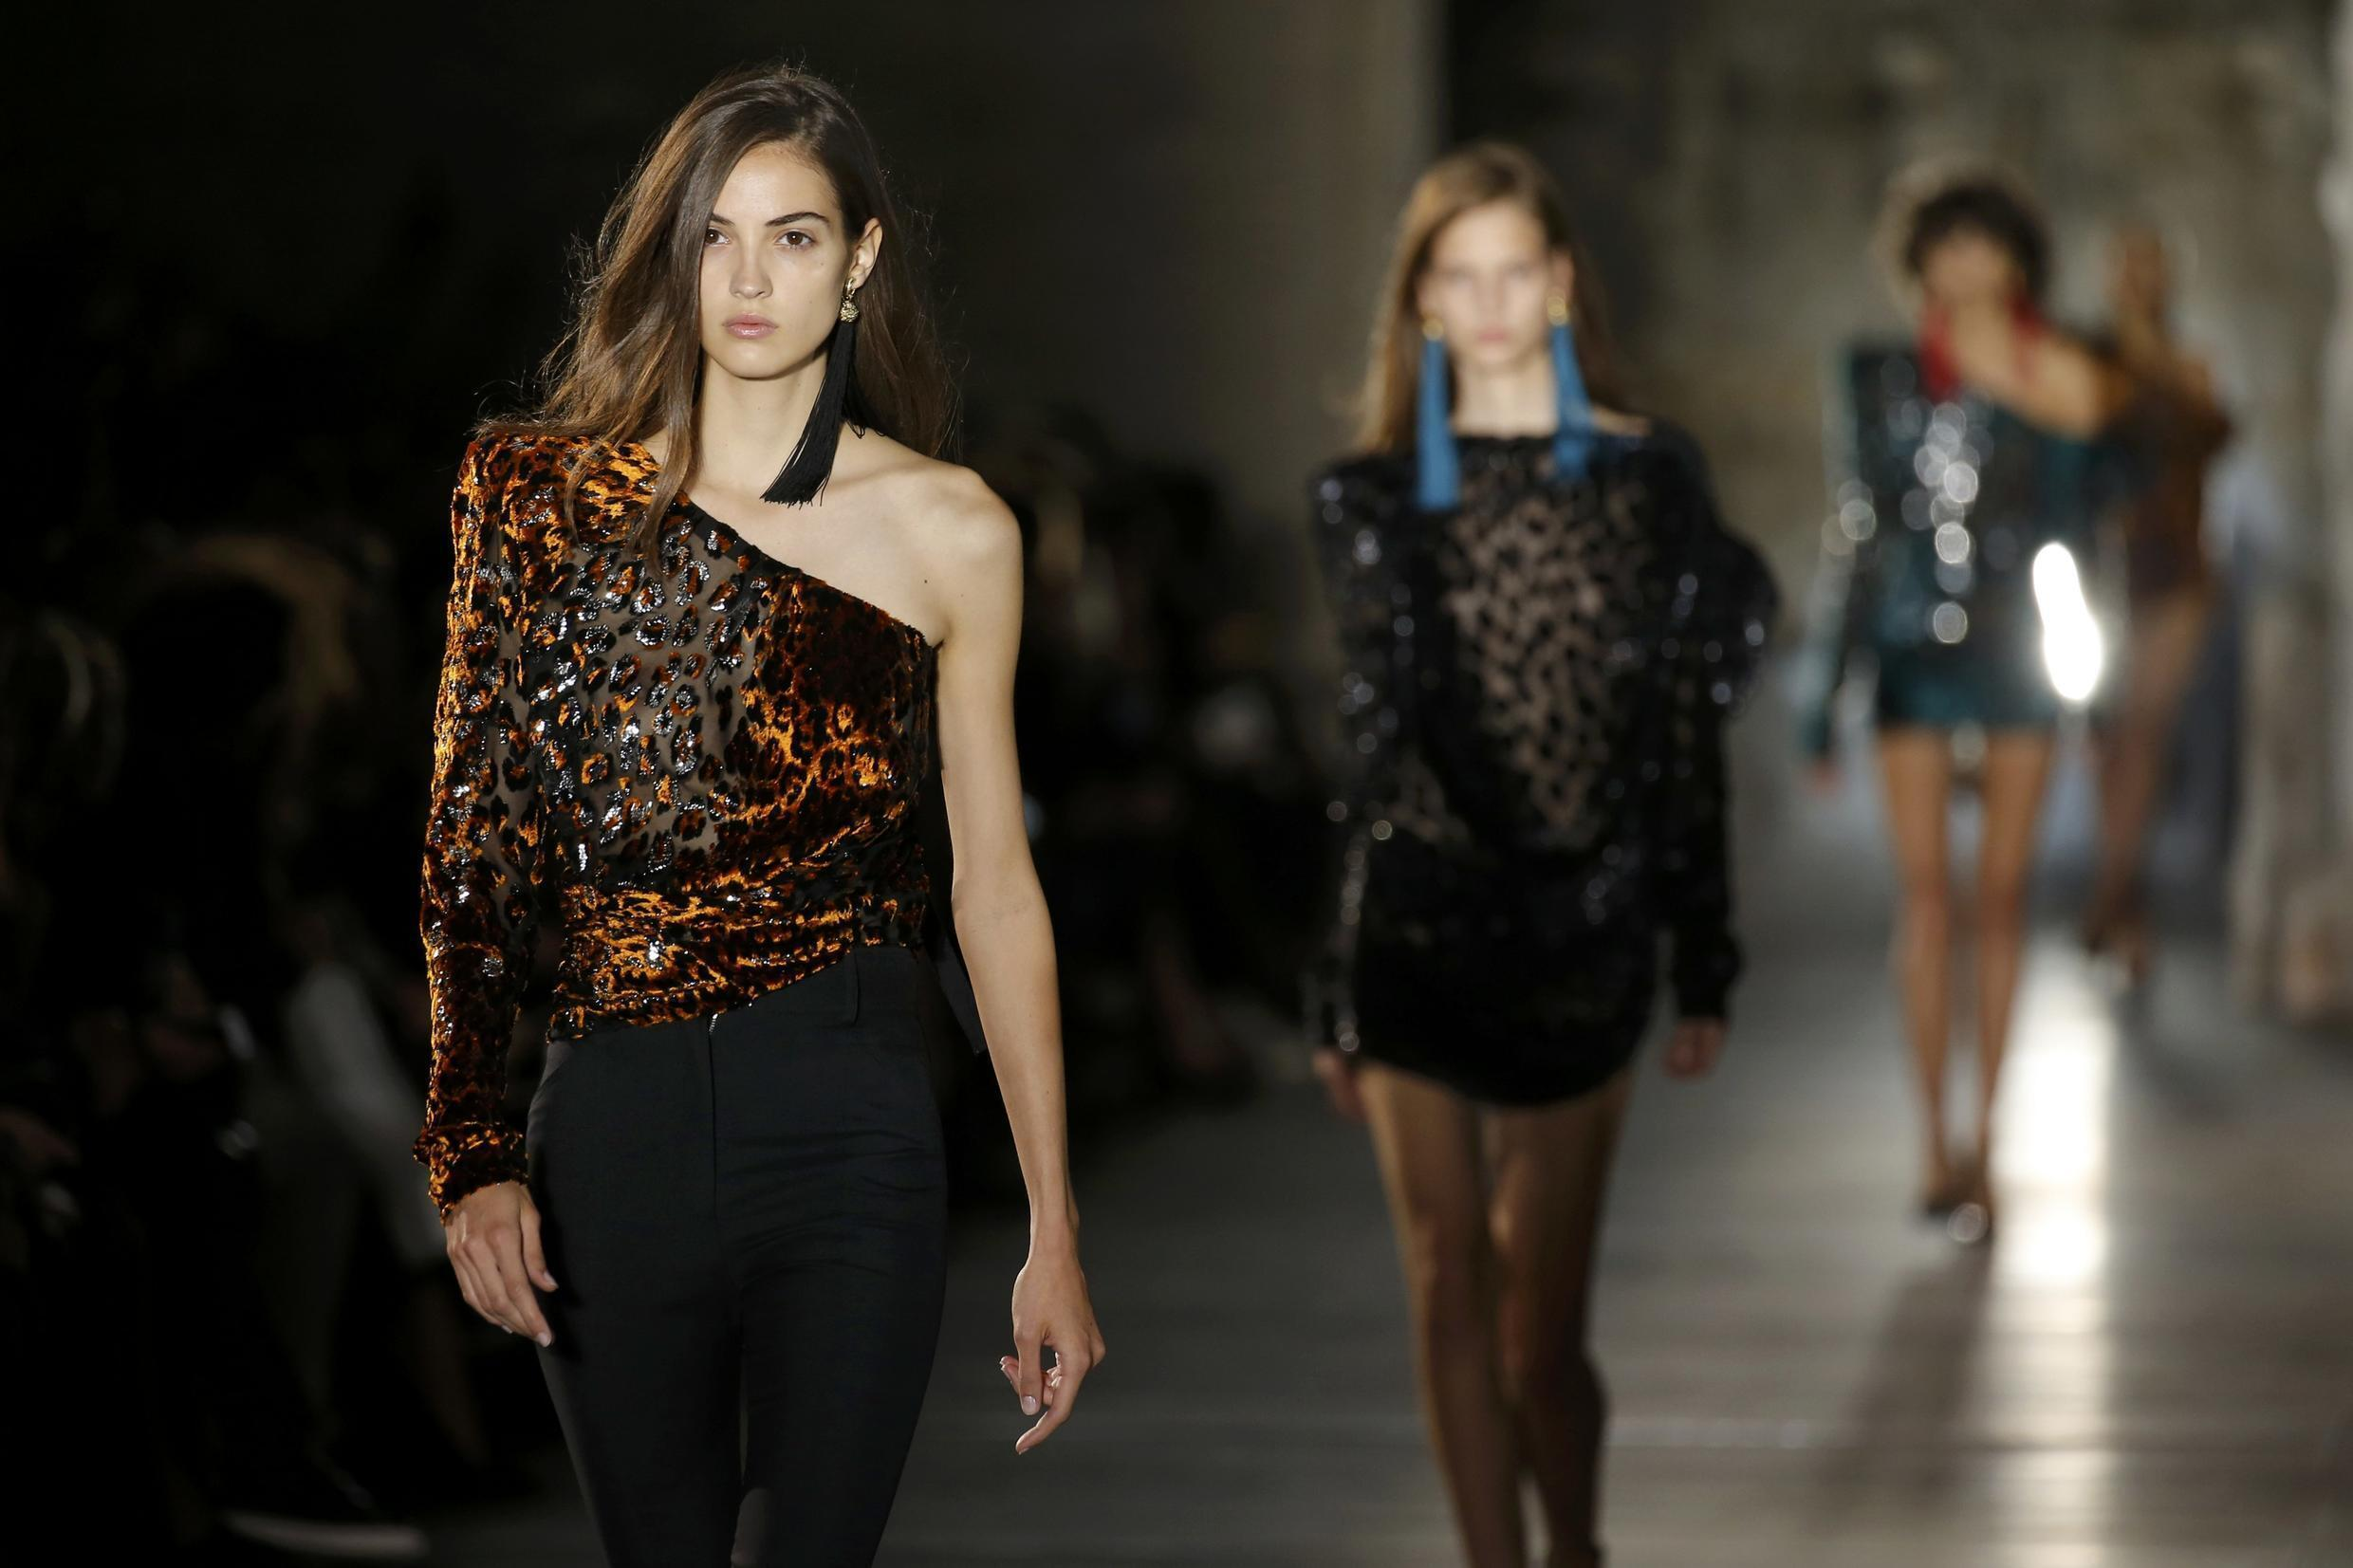 Models present creations by designer Anthony Vaccarello as part of his Spring/Summer 2017 women's ready-to-wear collection for fashion house Saint Laurent during Fashion Week in Paris, France, September 27, 2016.